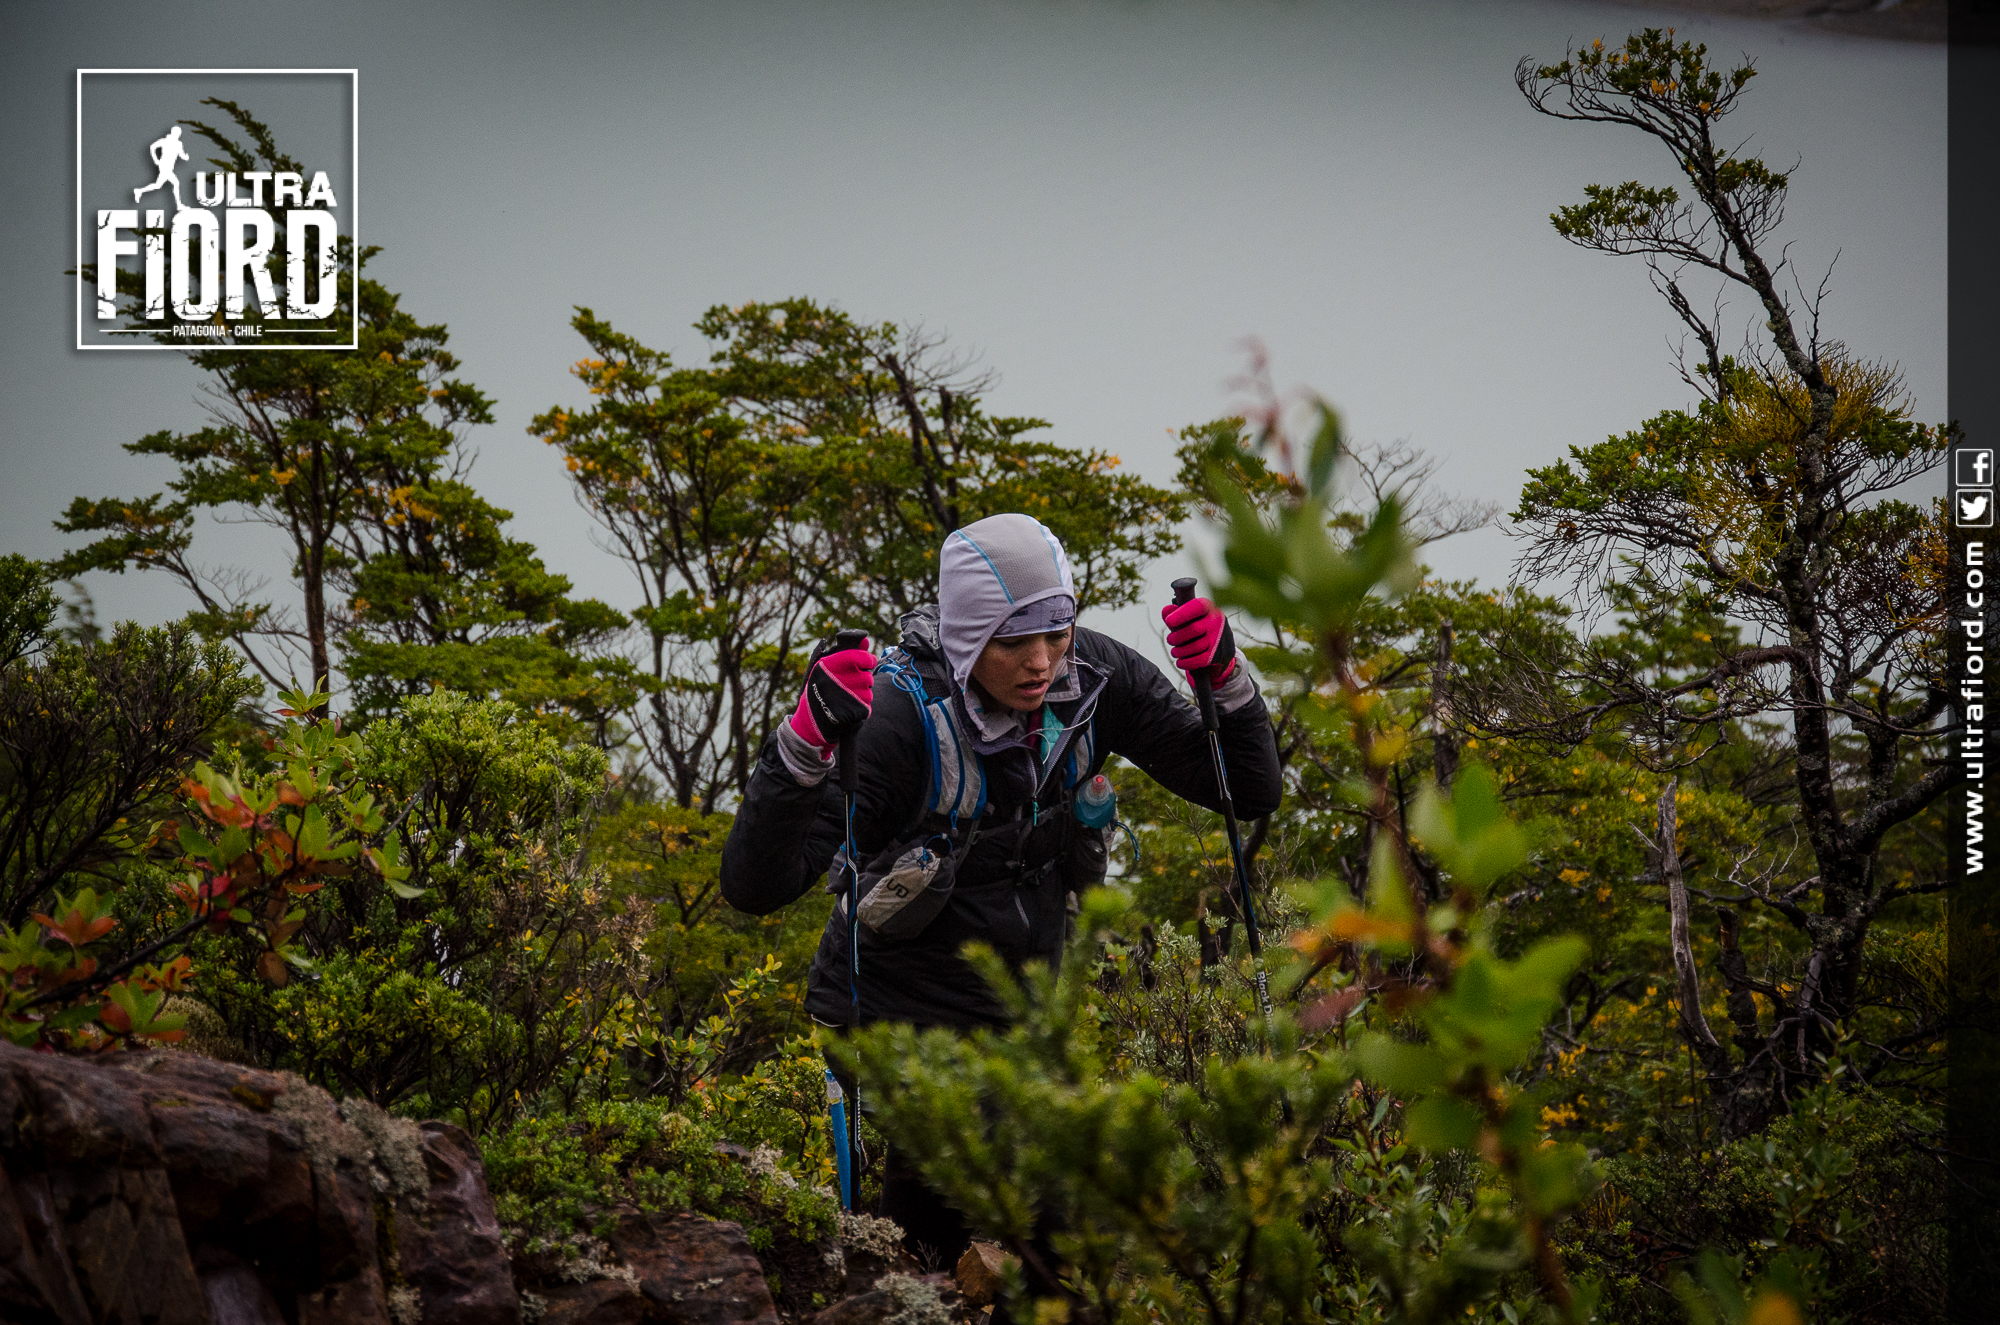 Ultima Esperanza, Patagonia, Chile, Ultra Trail Running, Ultra Fiord 2015, Candice Burt